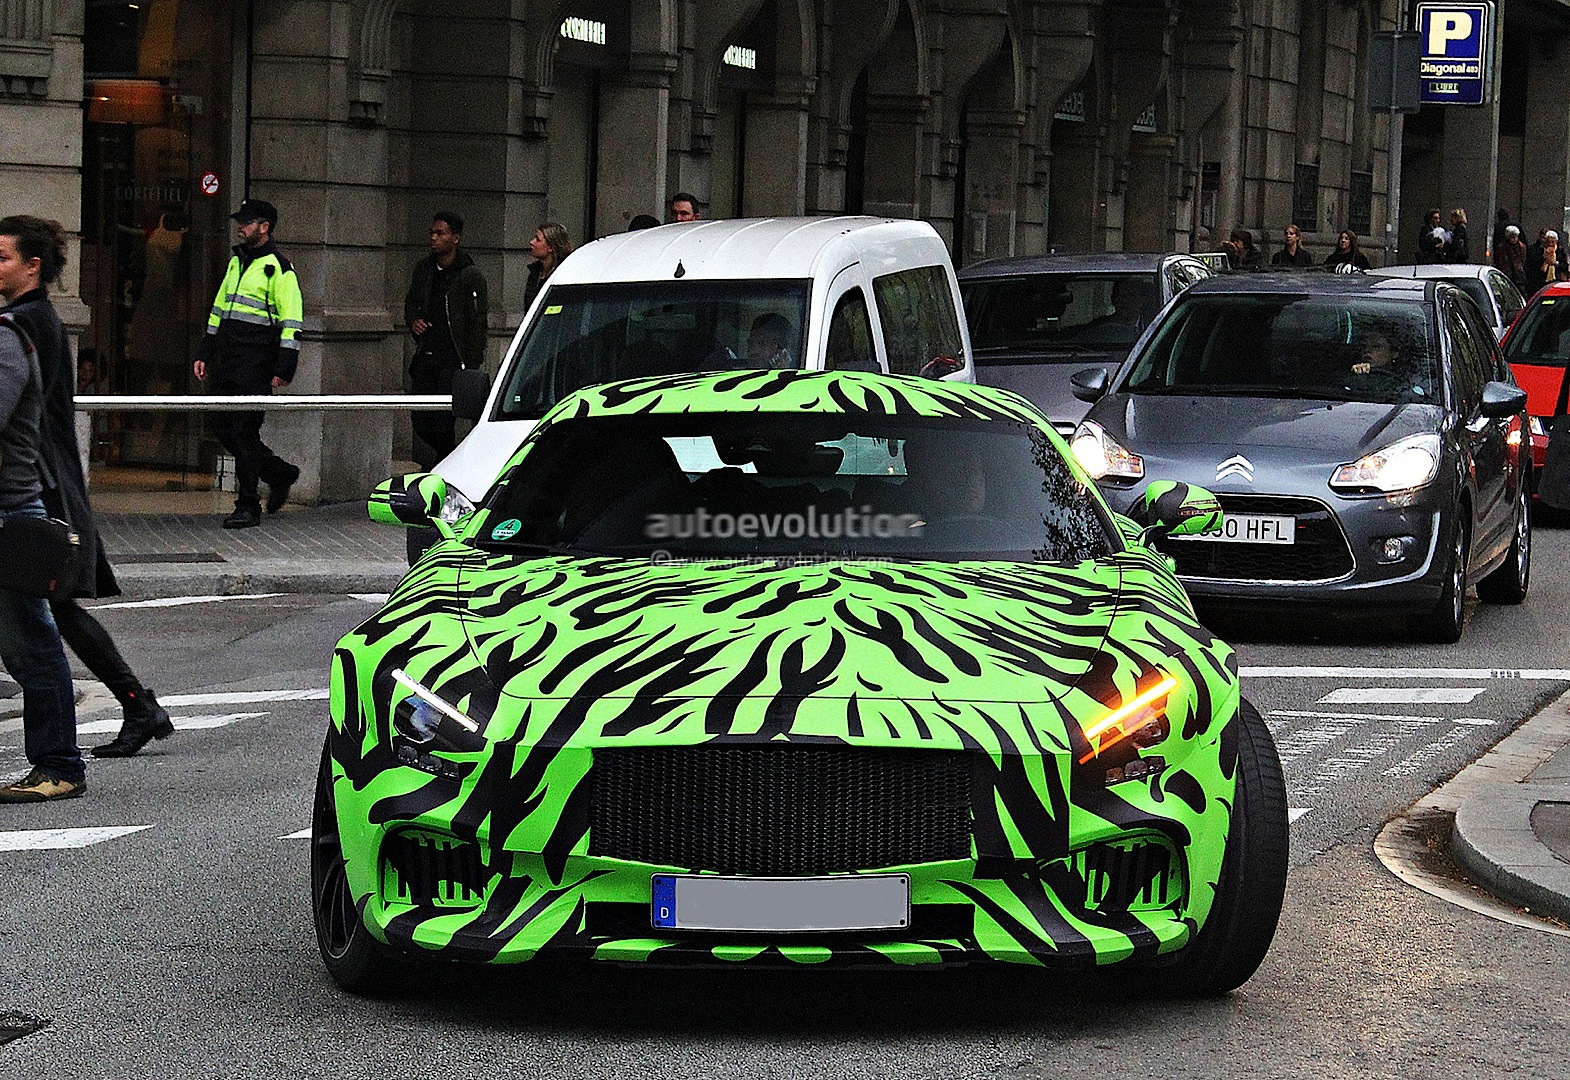 Mercedes Benz Gt Amg C190 Becomes The Hulk In Latest Spy